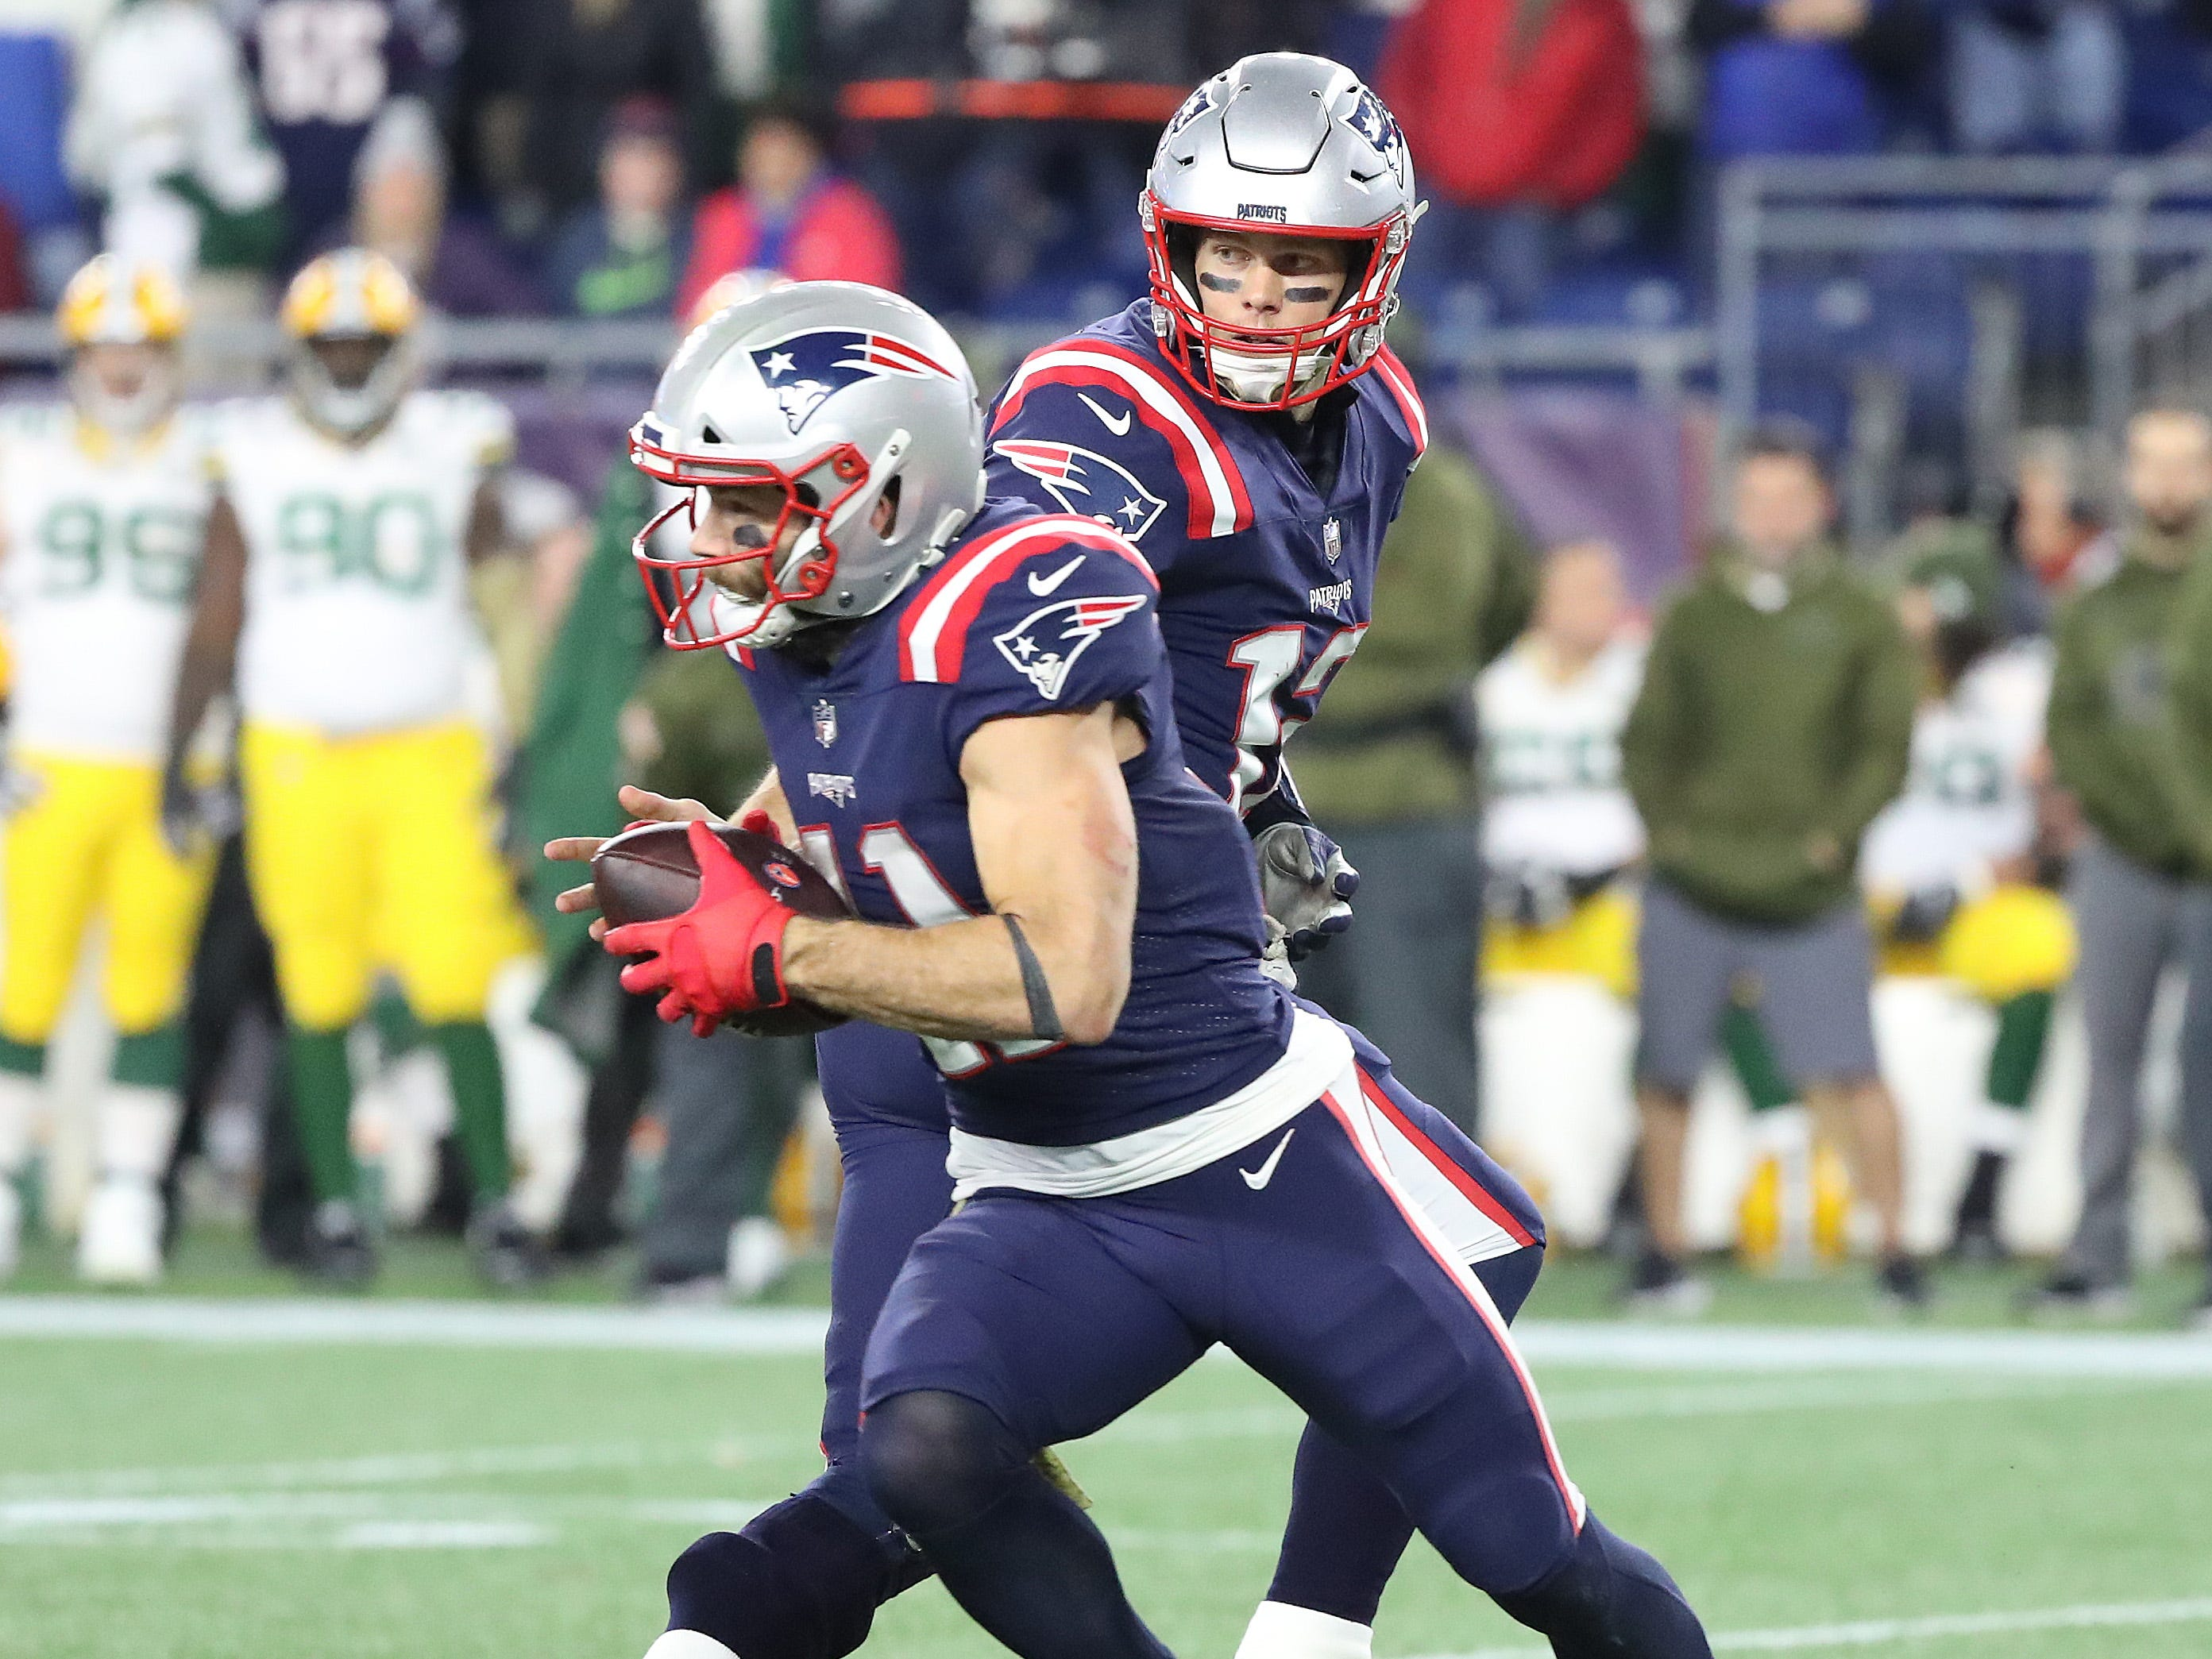 New England Patriots quarterback Tom Brady (12) hands off to wide receiver Julian Edelman (11) against the Green Bay Packers Sunday, November 4, 2018 at Gillette Stadium in Foxborough, Mass.